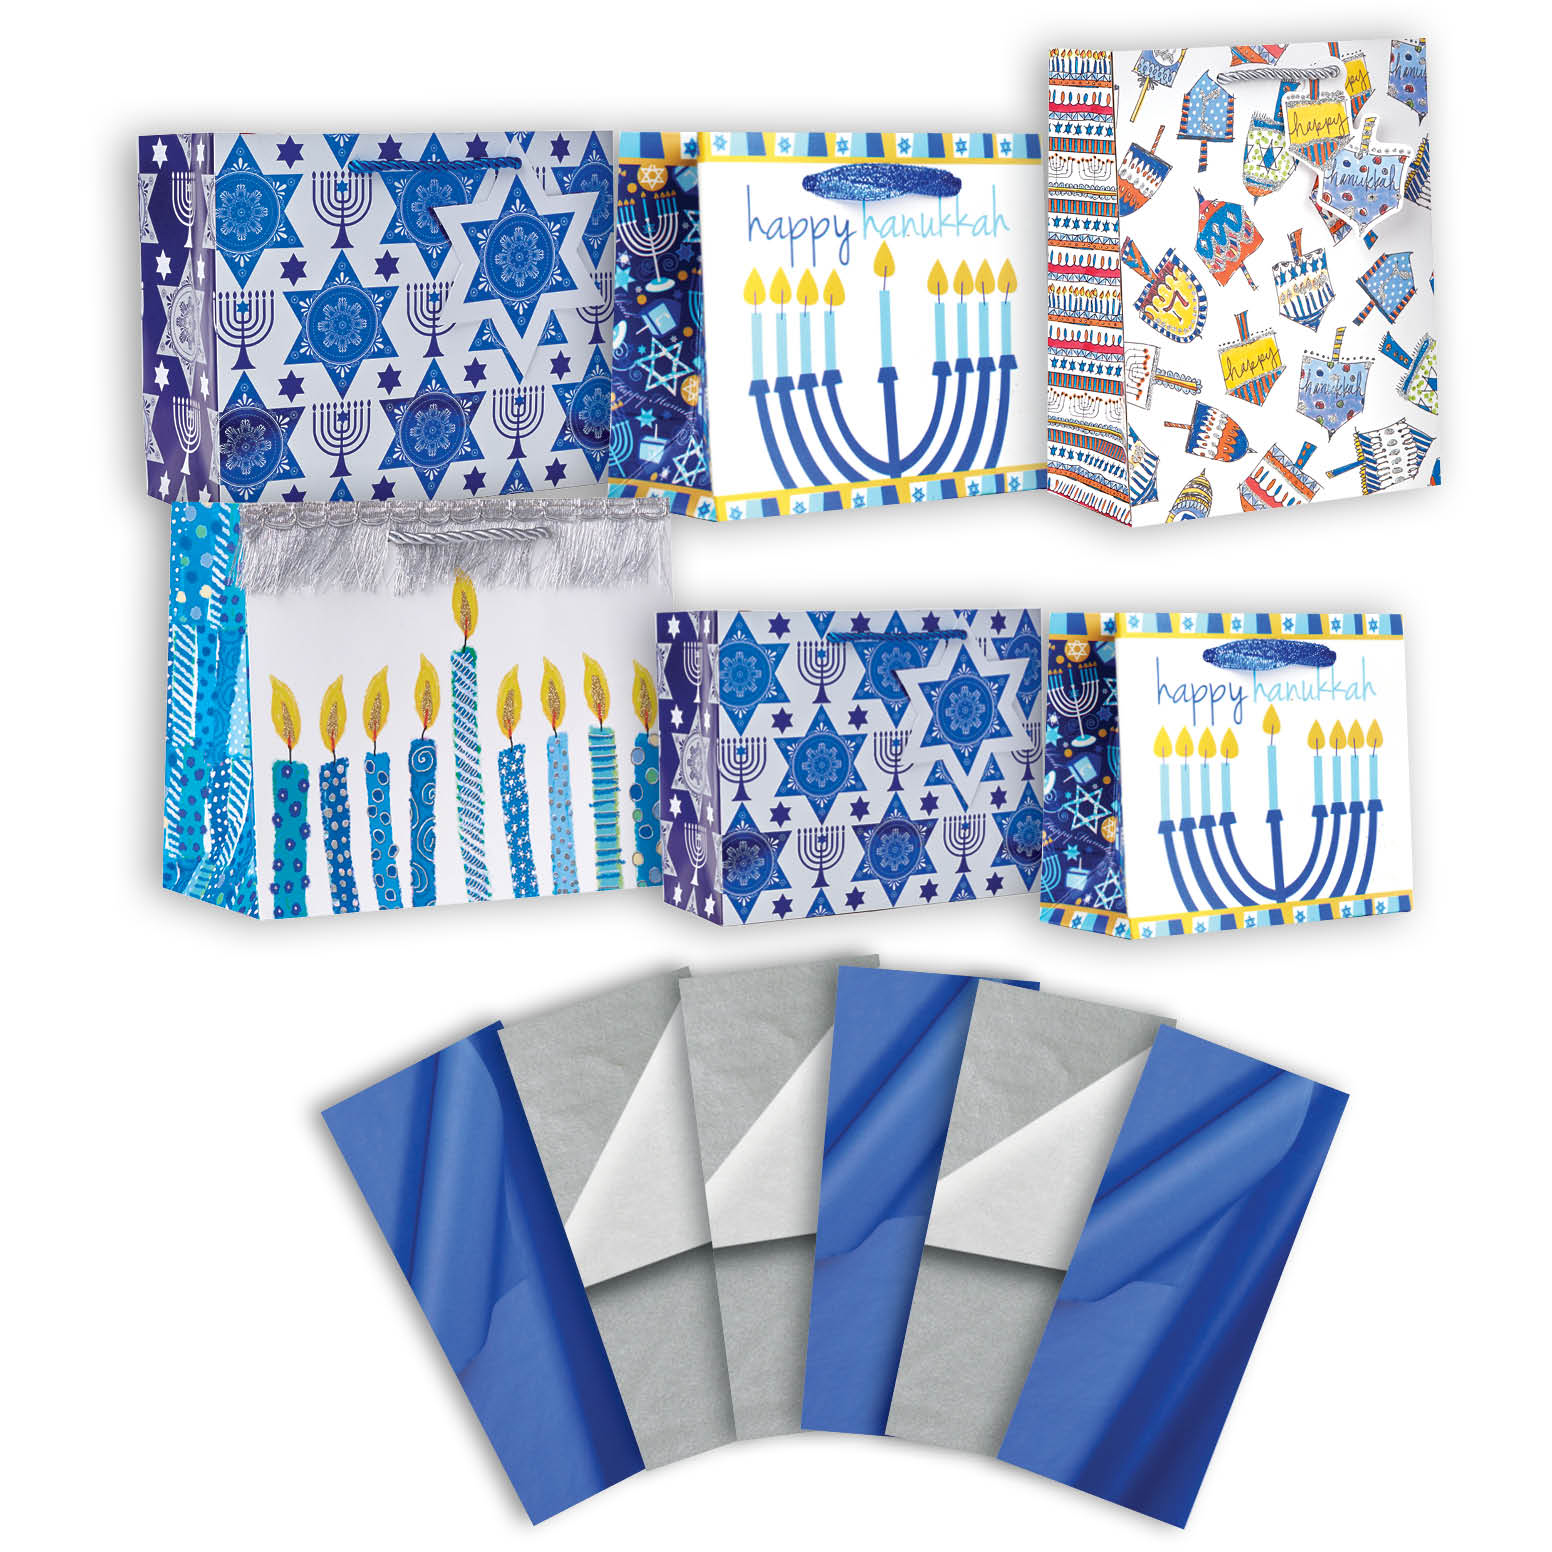 Jillson & Roberts Gift Bag & Tissue Assortment, Hanukkah Designs (6 Bags)